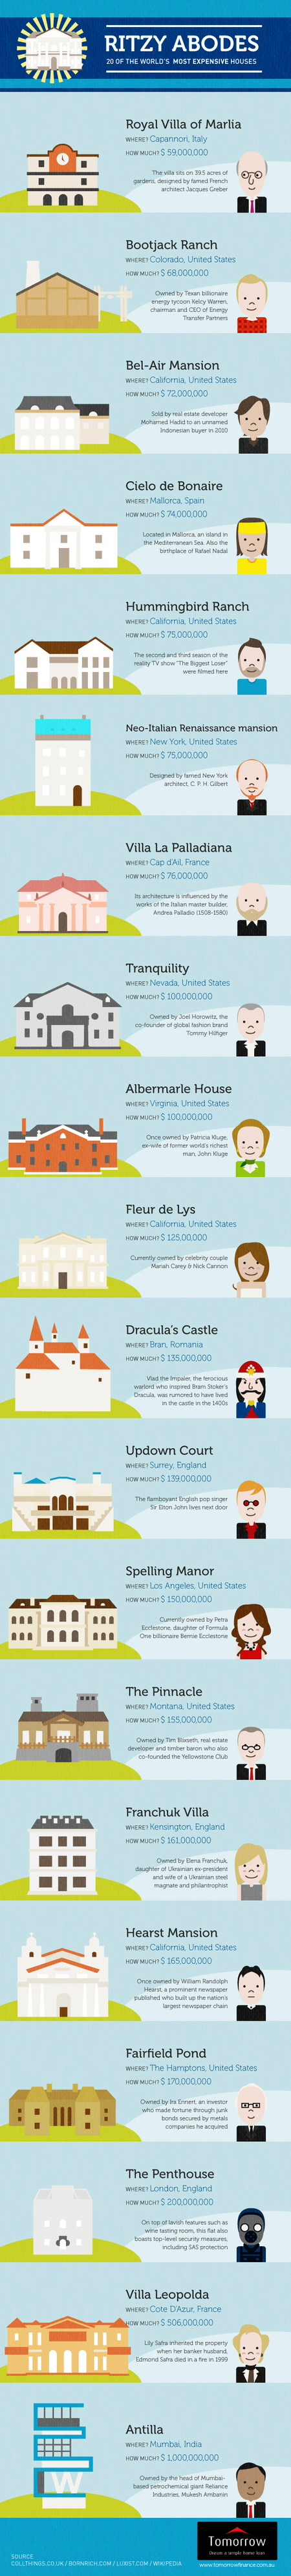 20 Of The World Most Expensive Houses Infographic Milkwhale